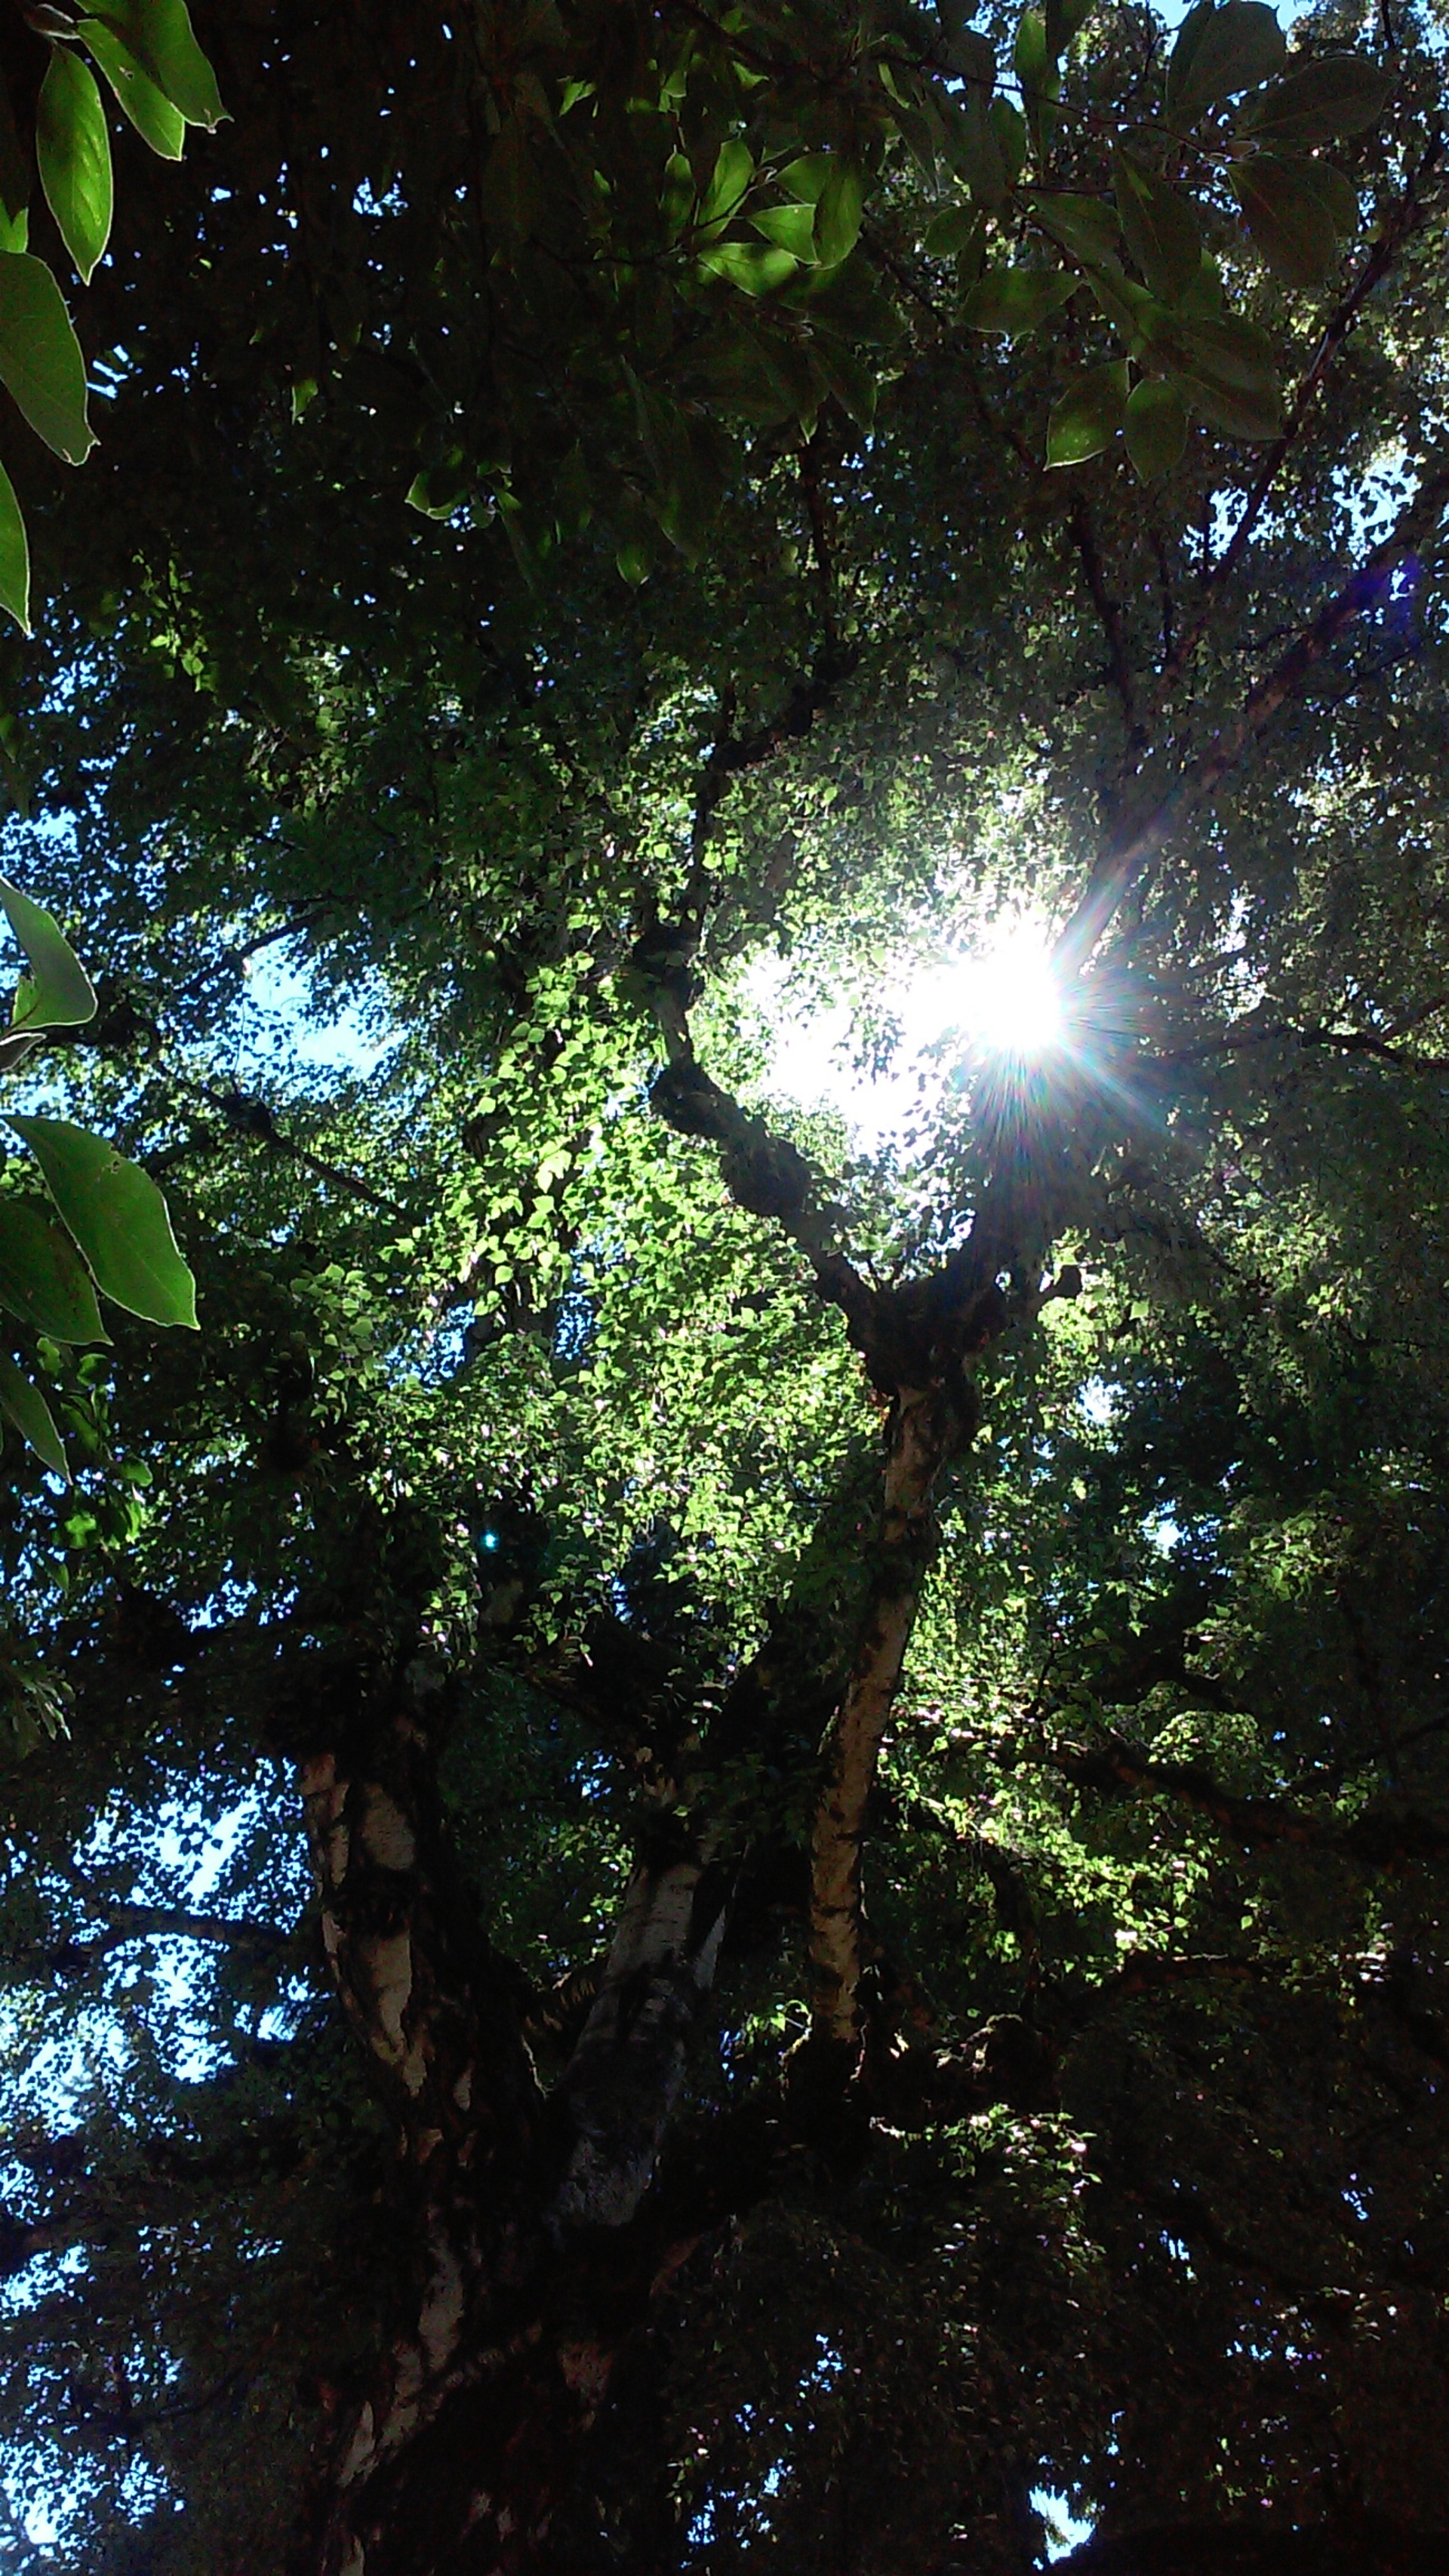 Branches. Sun shining through the branches of an old tree in Lone Fir cemetery, Portland, OR.